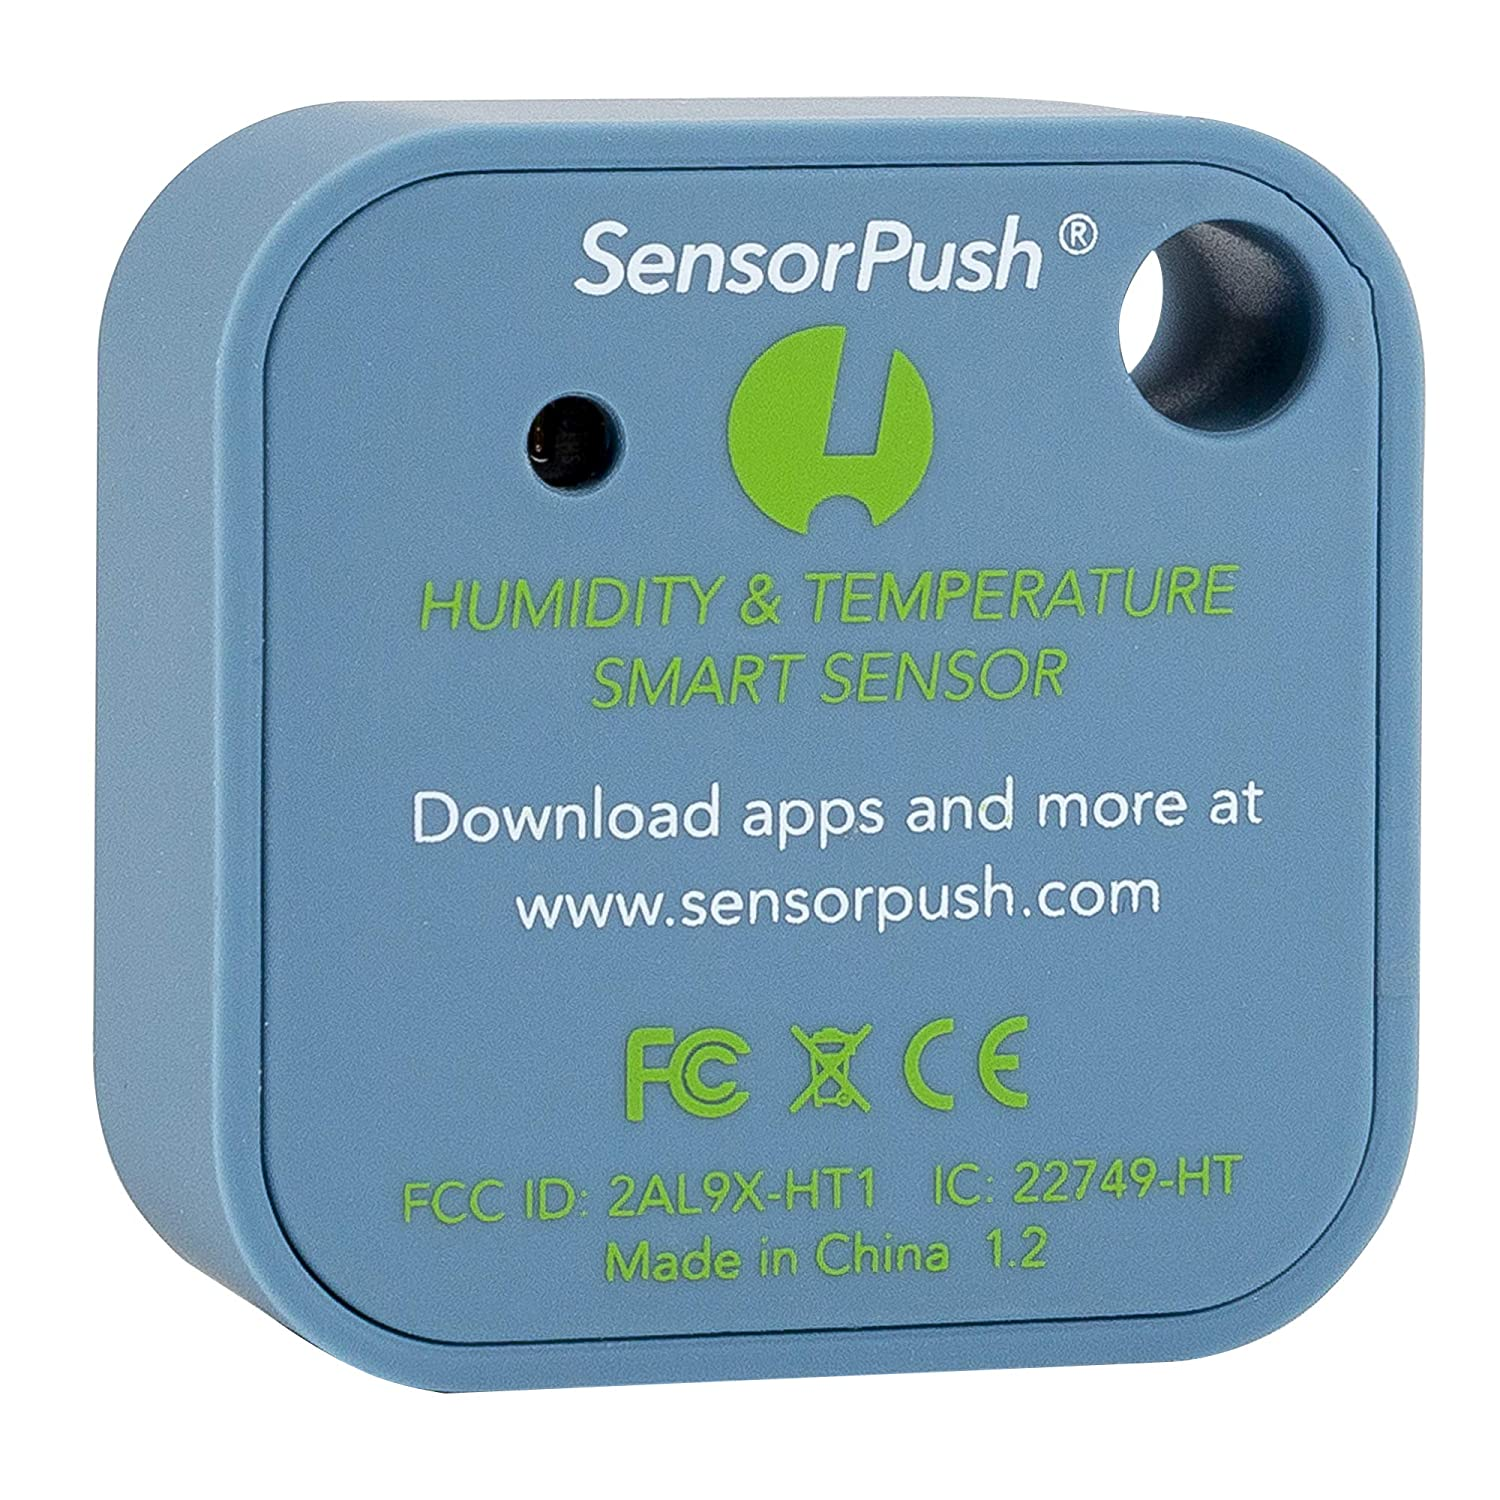 SensorPush Wireless Thermometer/Hygrometer for iPhone/Android - Humidity & Temperature Smart Sensor with Alerts. Developed and Supported in The USA